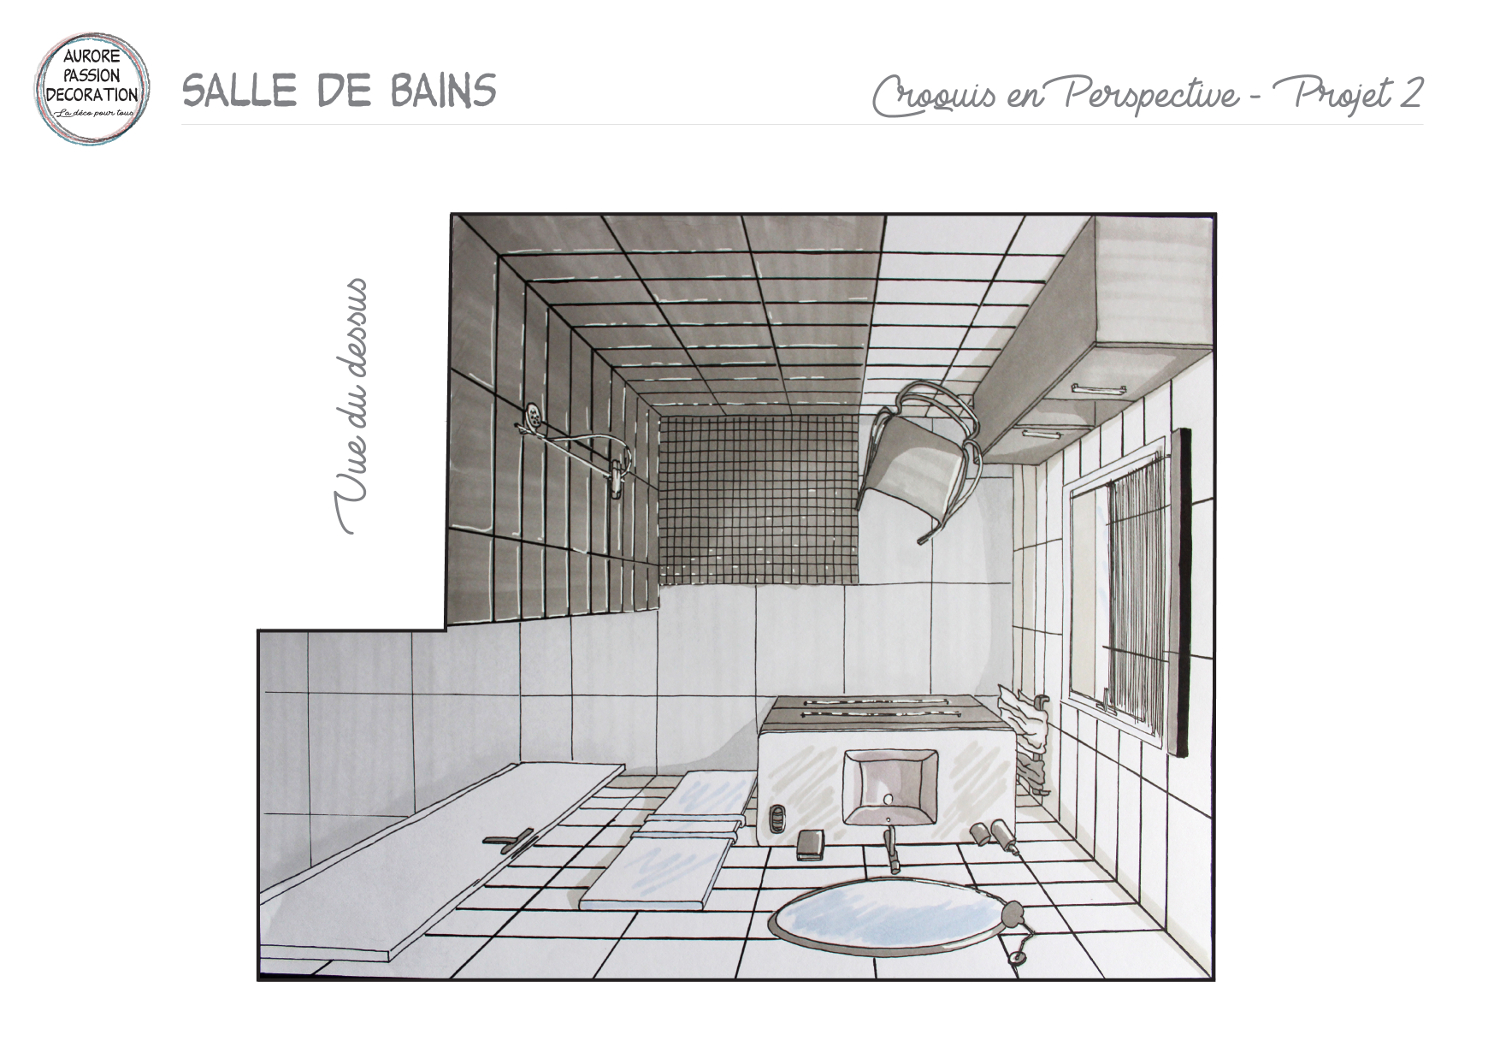 SDB Projet 2 perspective-01